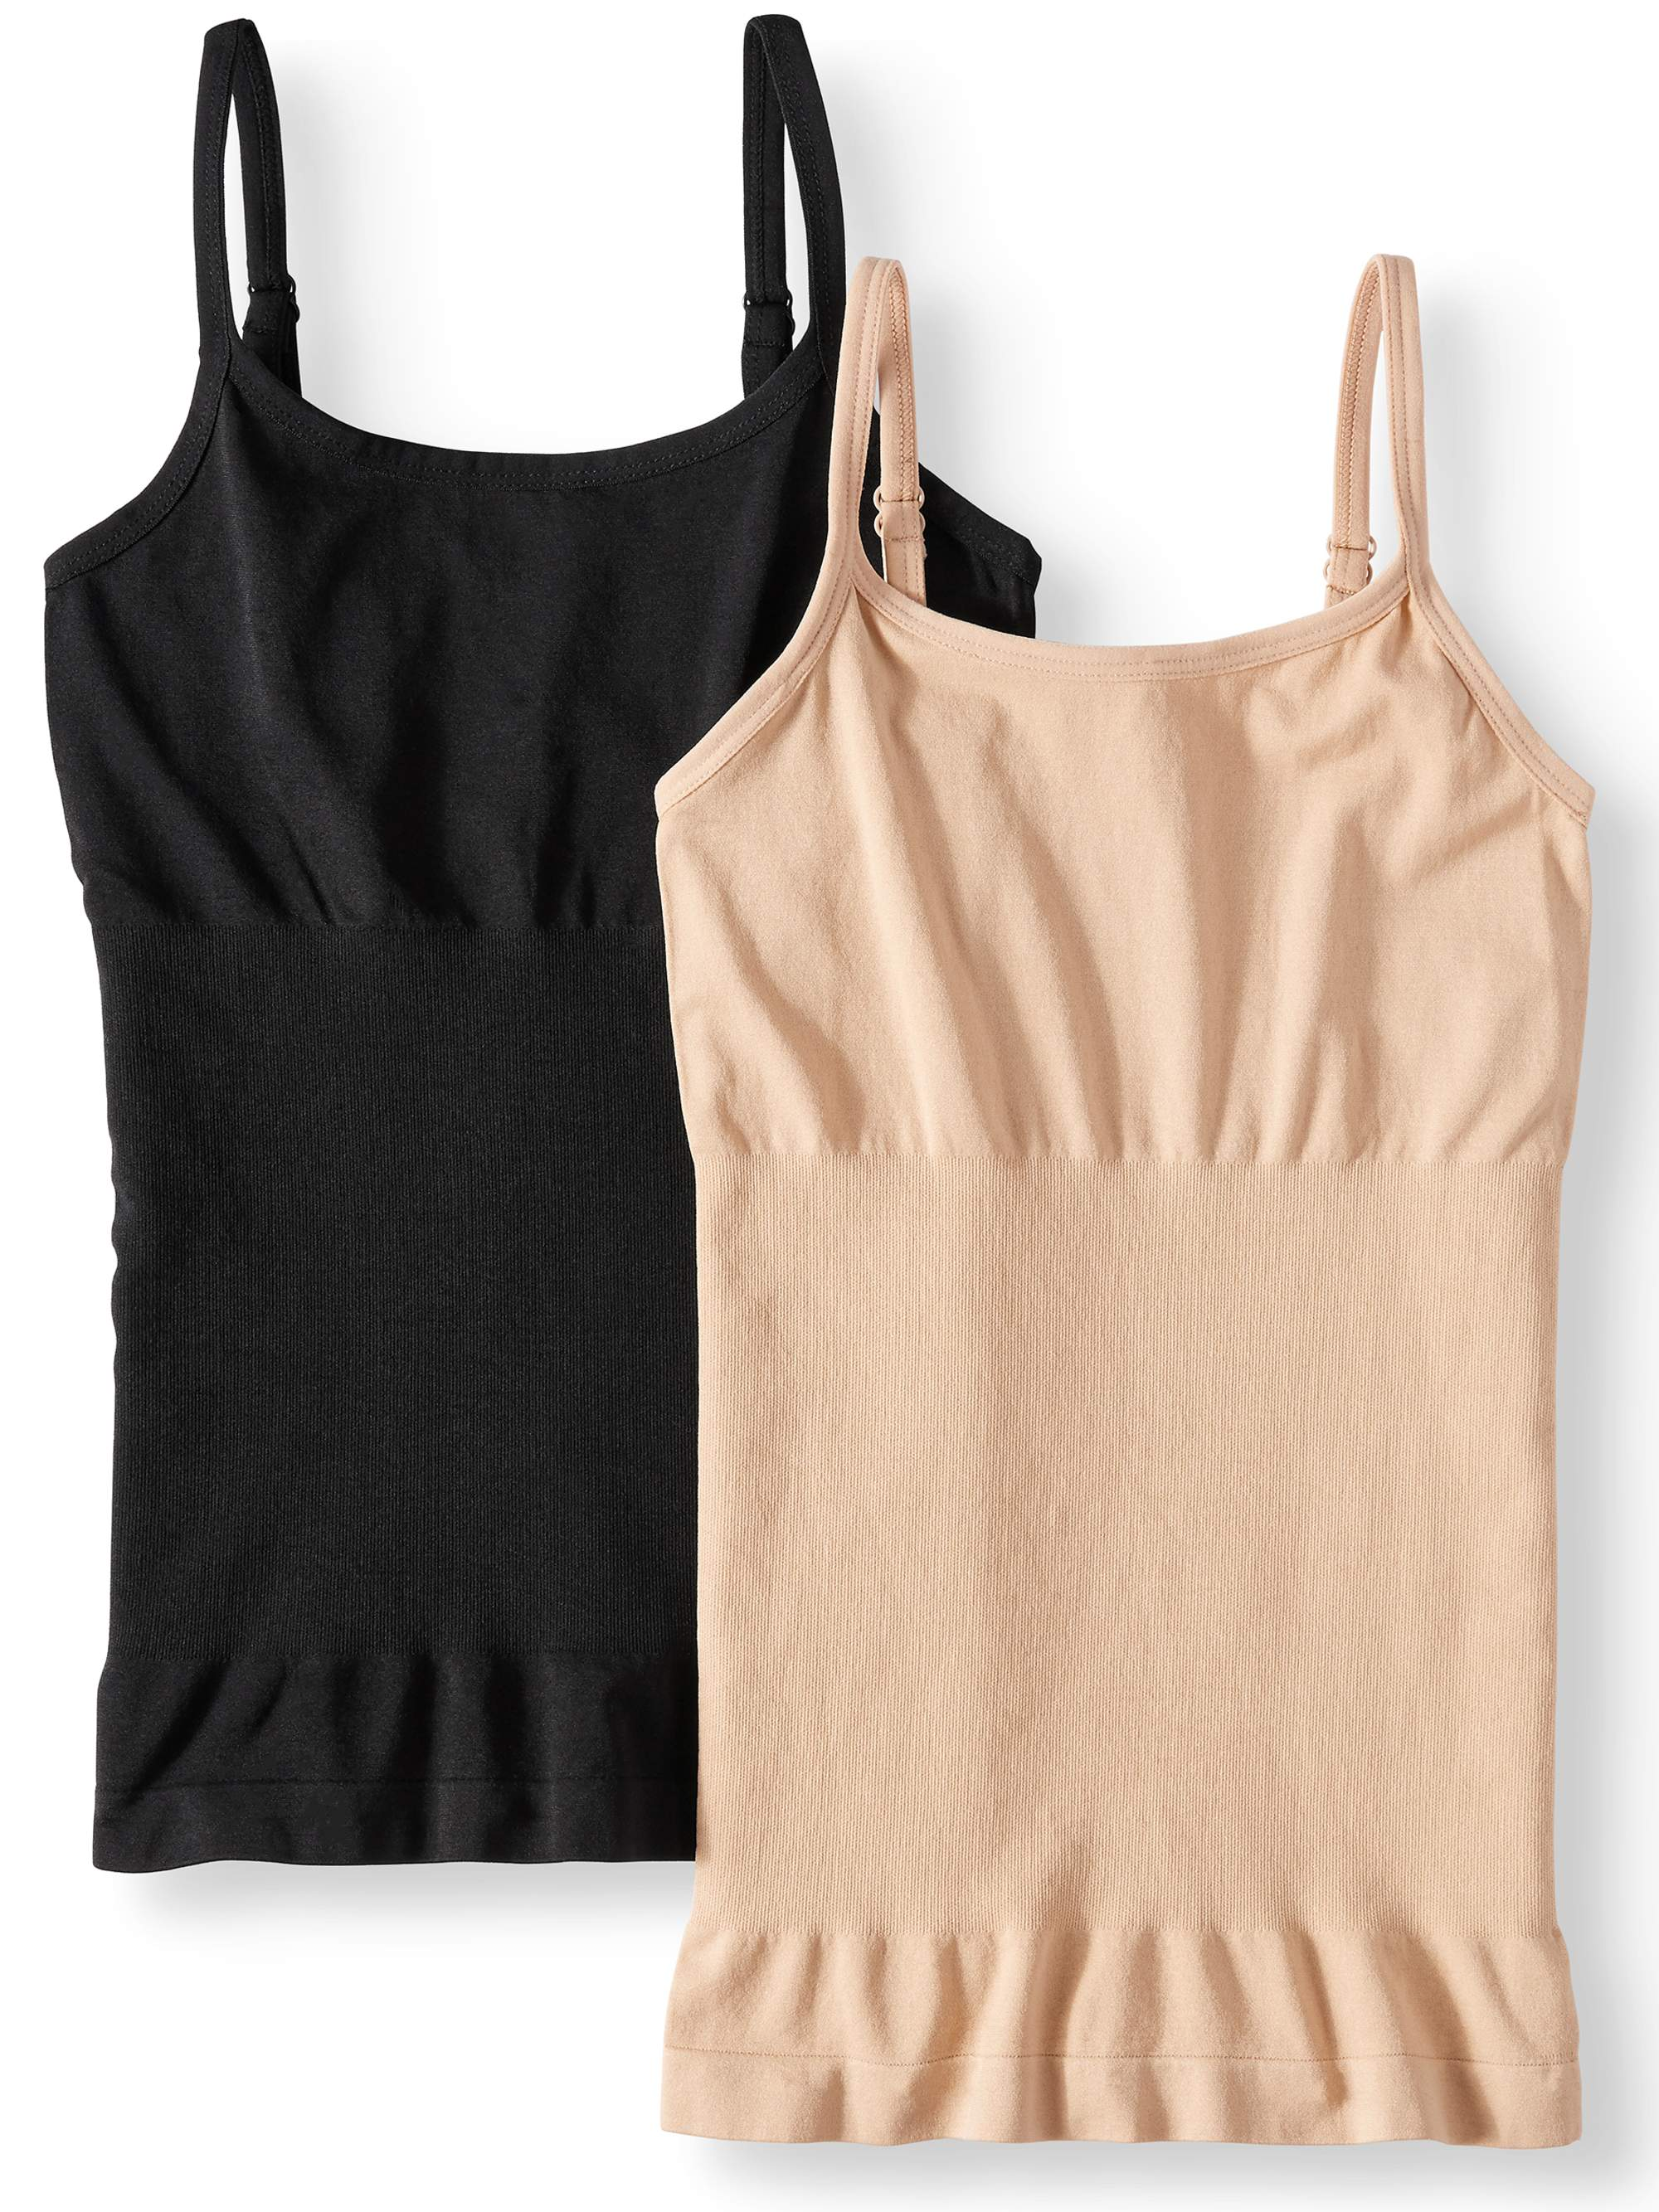 Women's and Women's Plus Linda 2 Pack Seamless Shaping Camisole